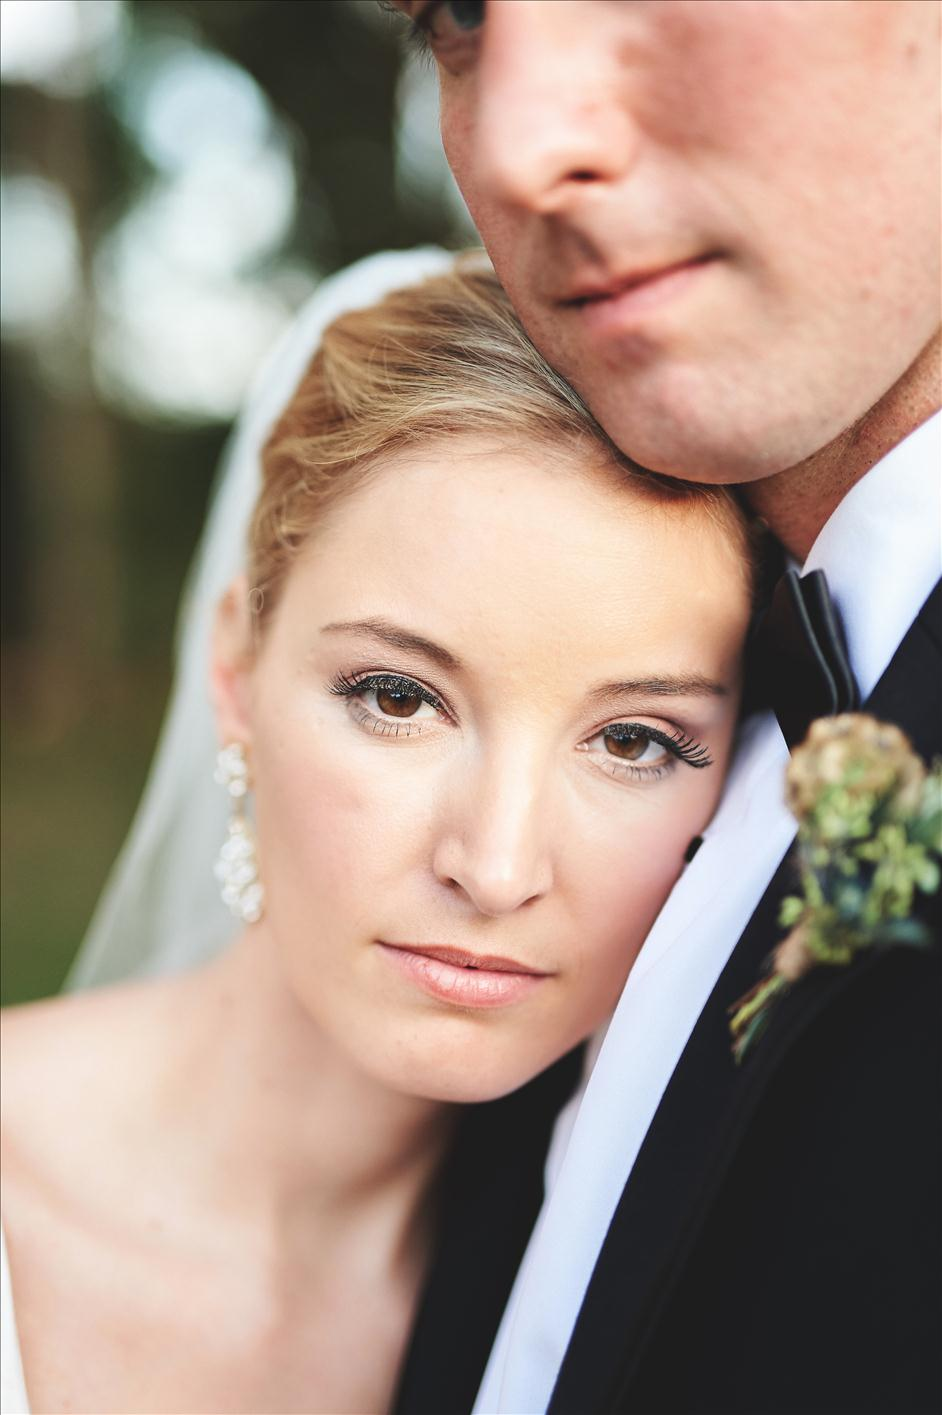 4 Potential Wedding Portrait Crises (and What to Do About Them) // Wedding Photography Tips from The Reason Photography for Nations Photo Lab